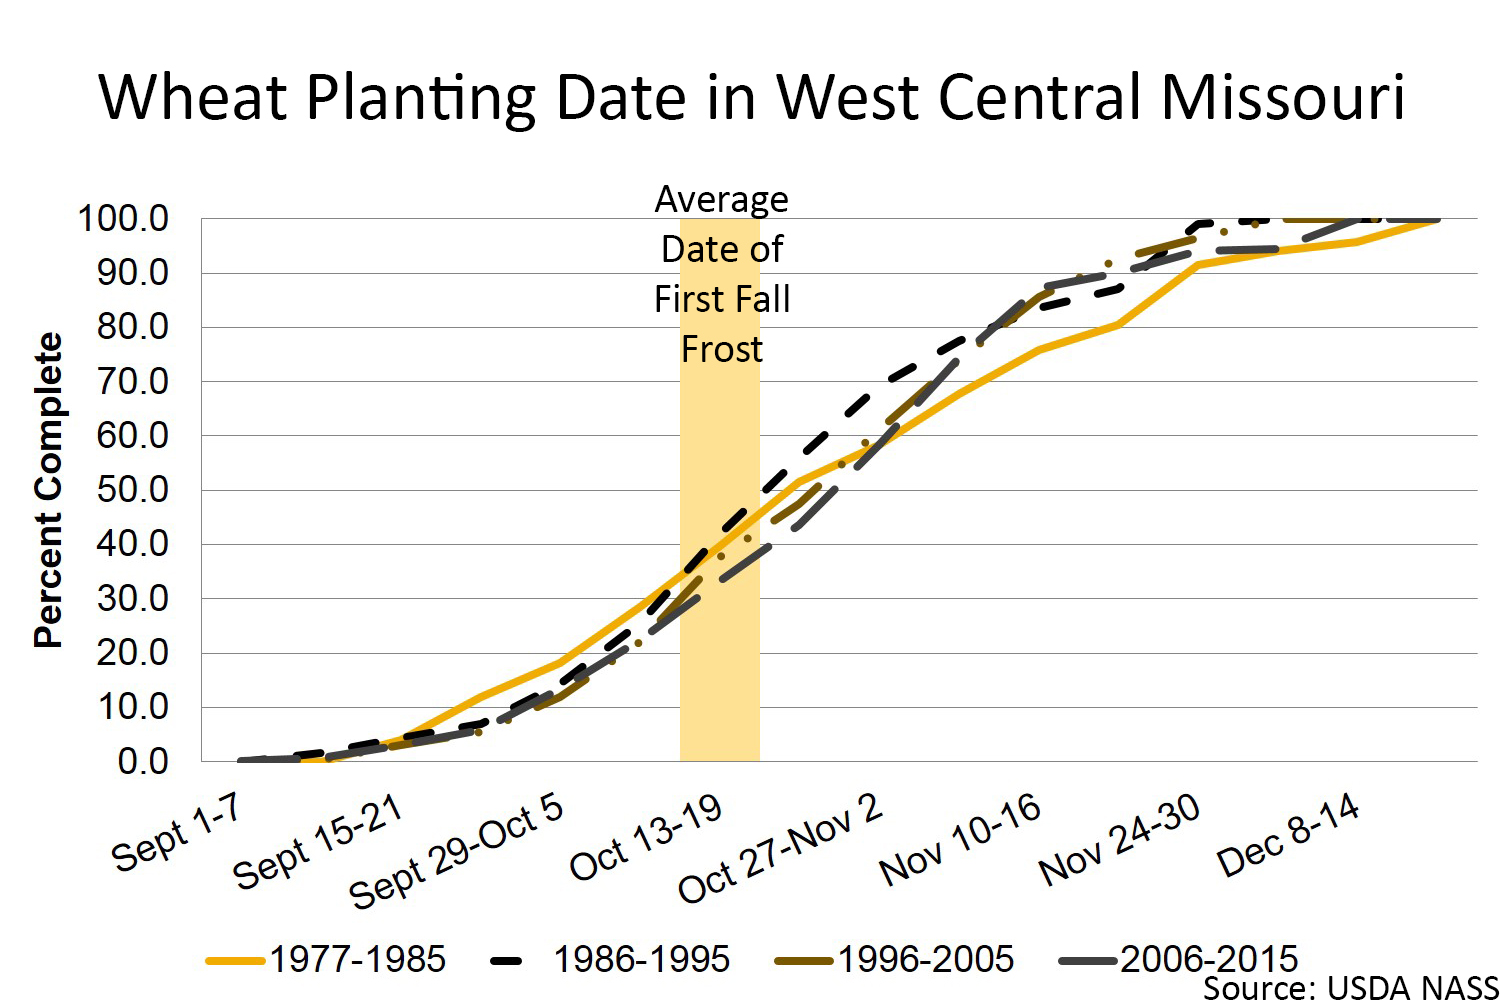 Wheat planting date in west central Missouri chart